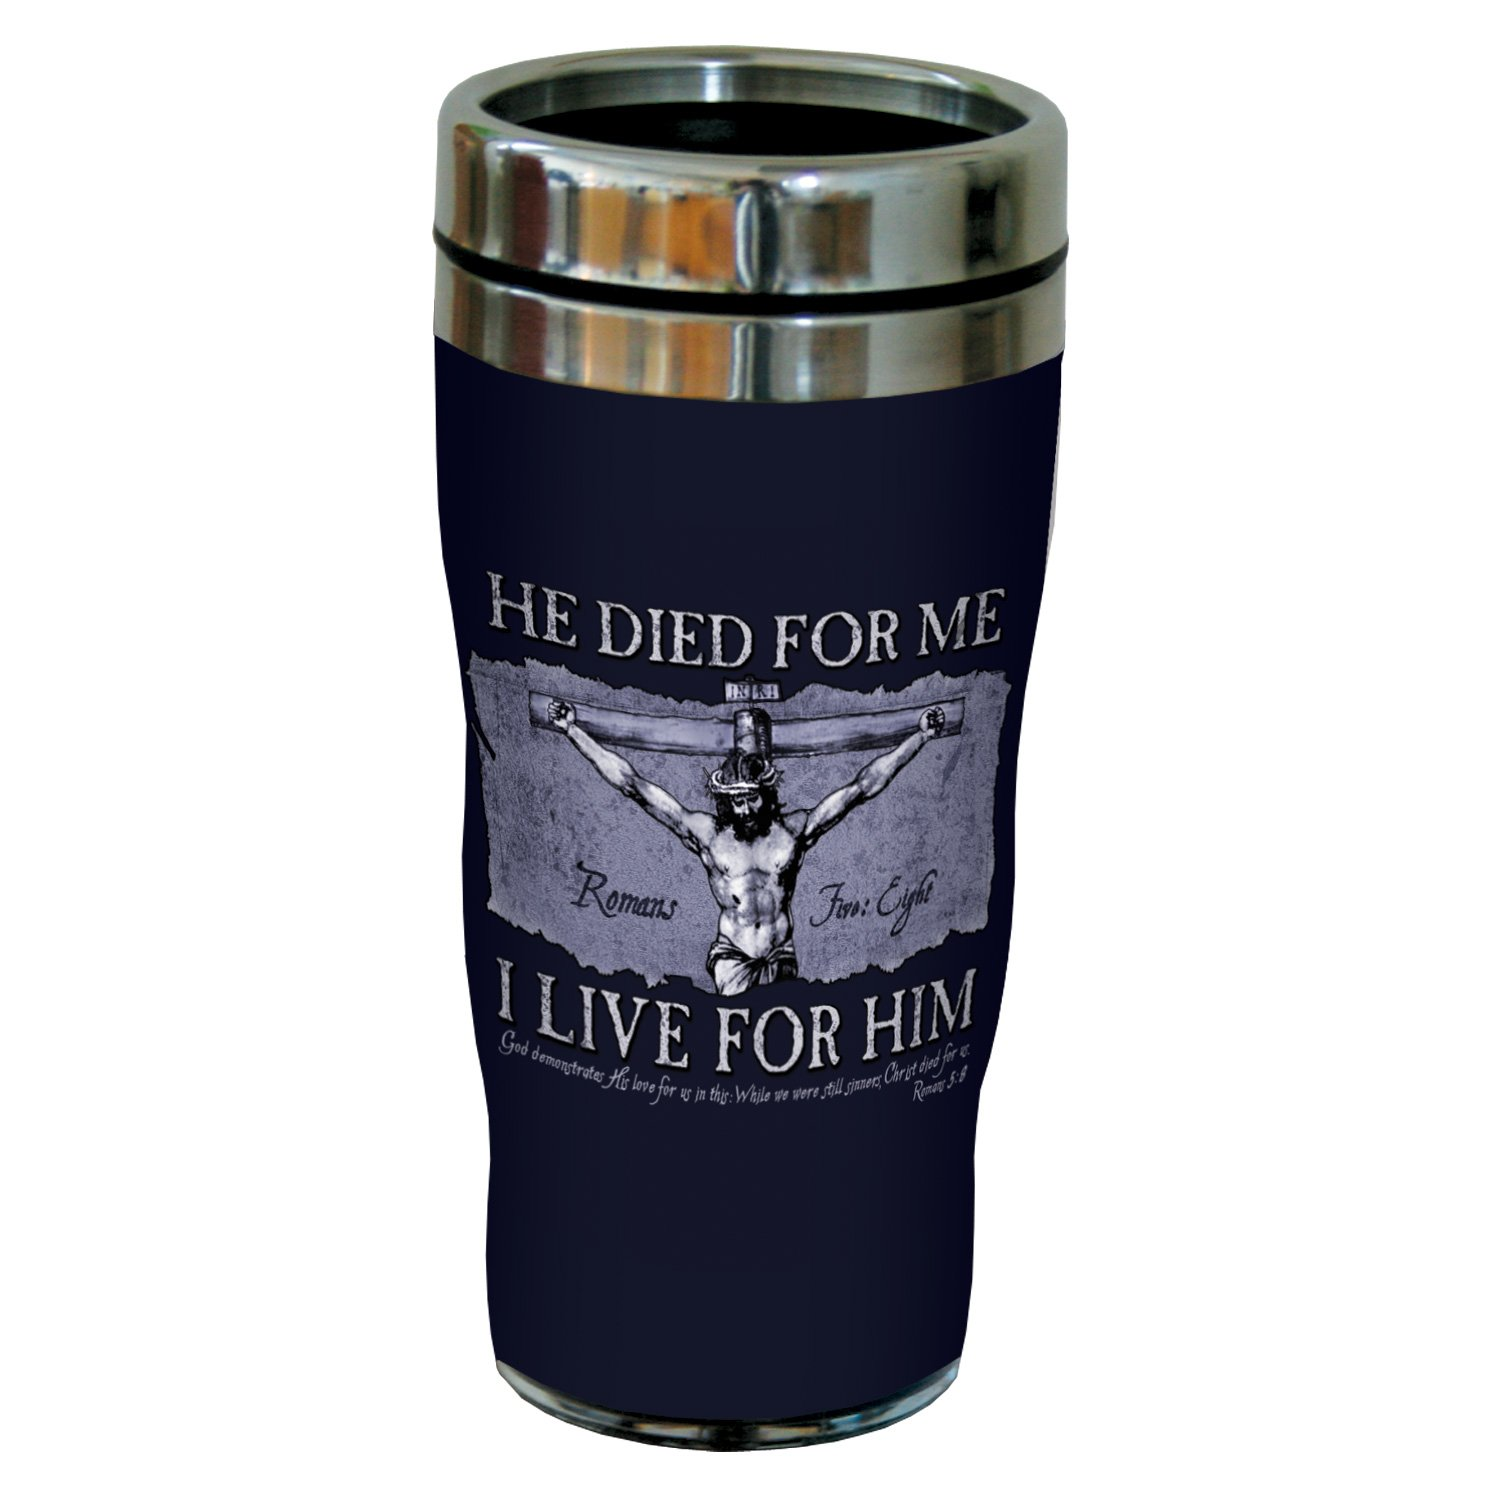 Tree-Free Greetings sg24258 He Died for Me: Romans 5:8 Sip 'N Go Stainless Steel Lined Travel Tumbler, 16-Ounce by Tree-Free Greetings